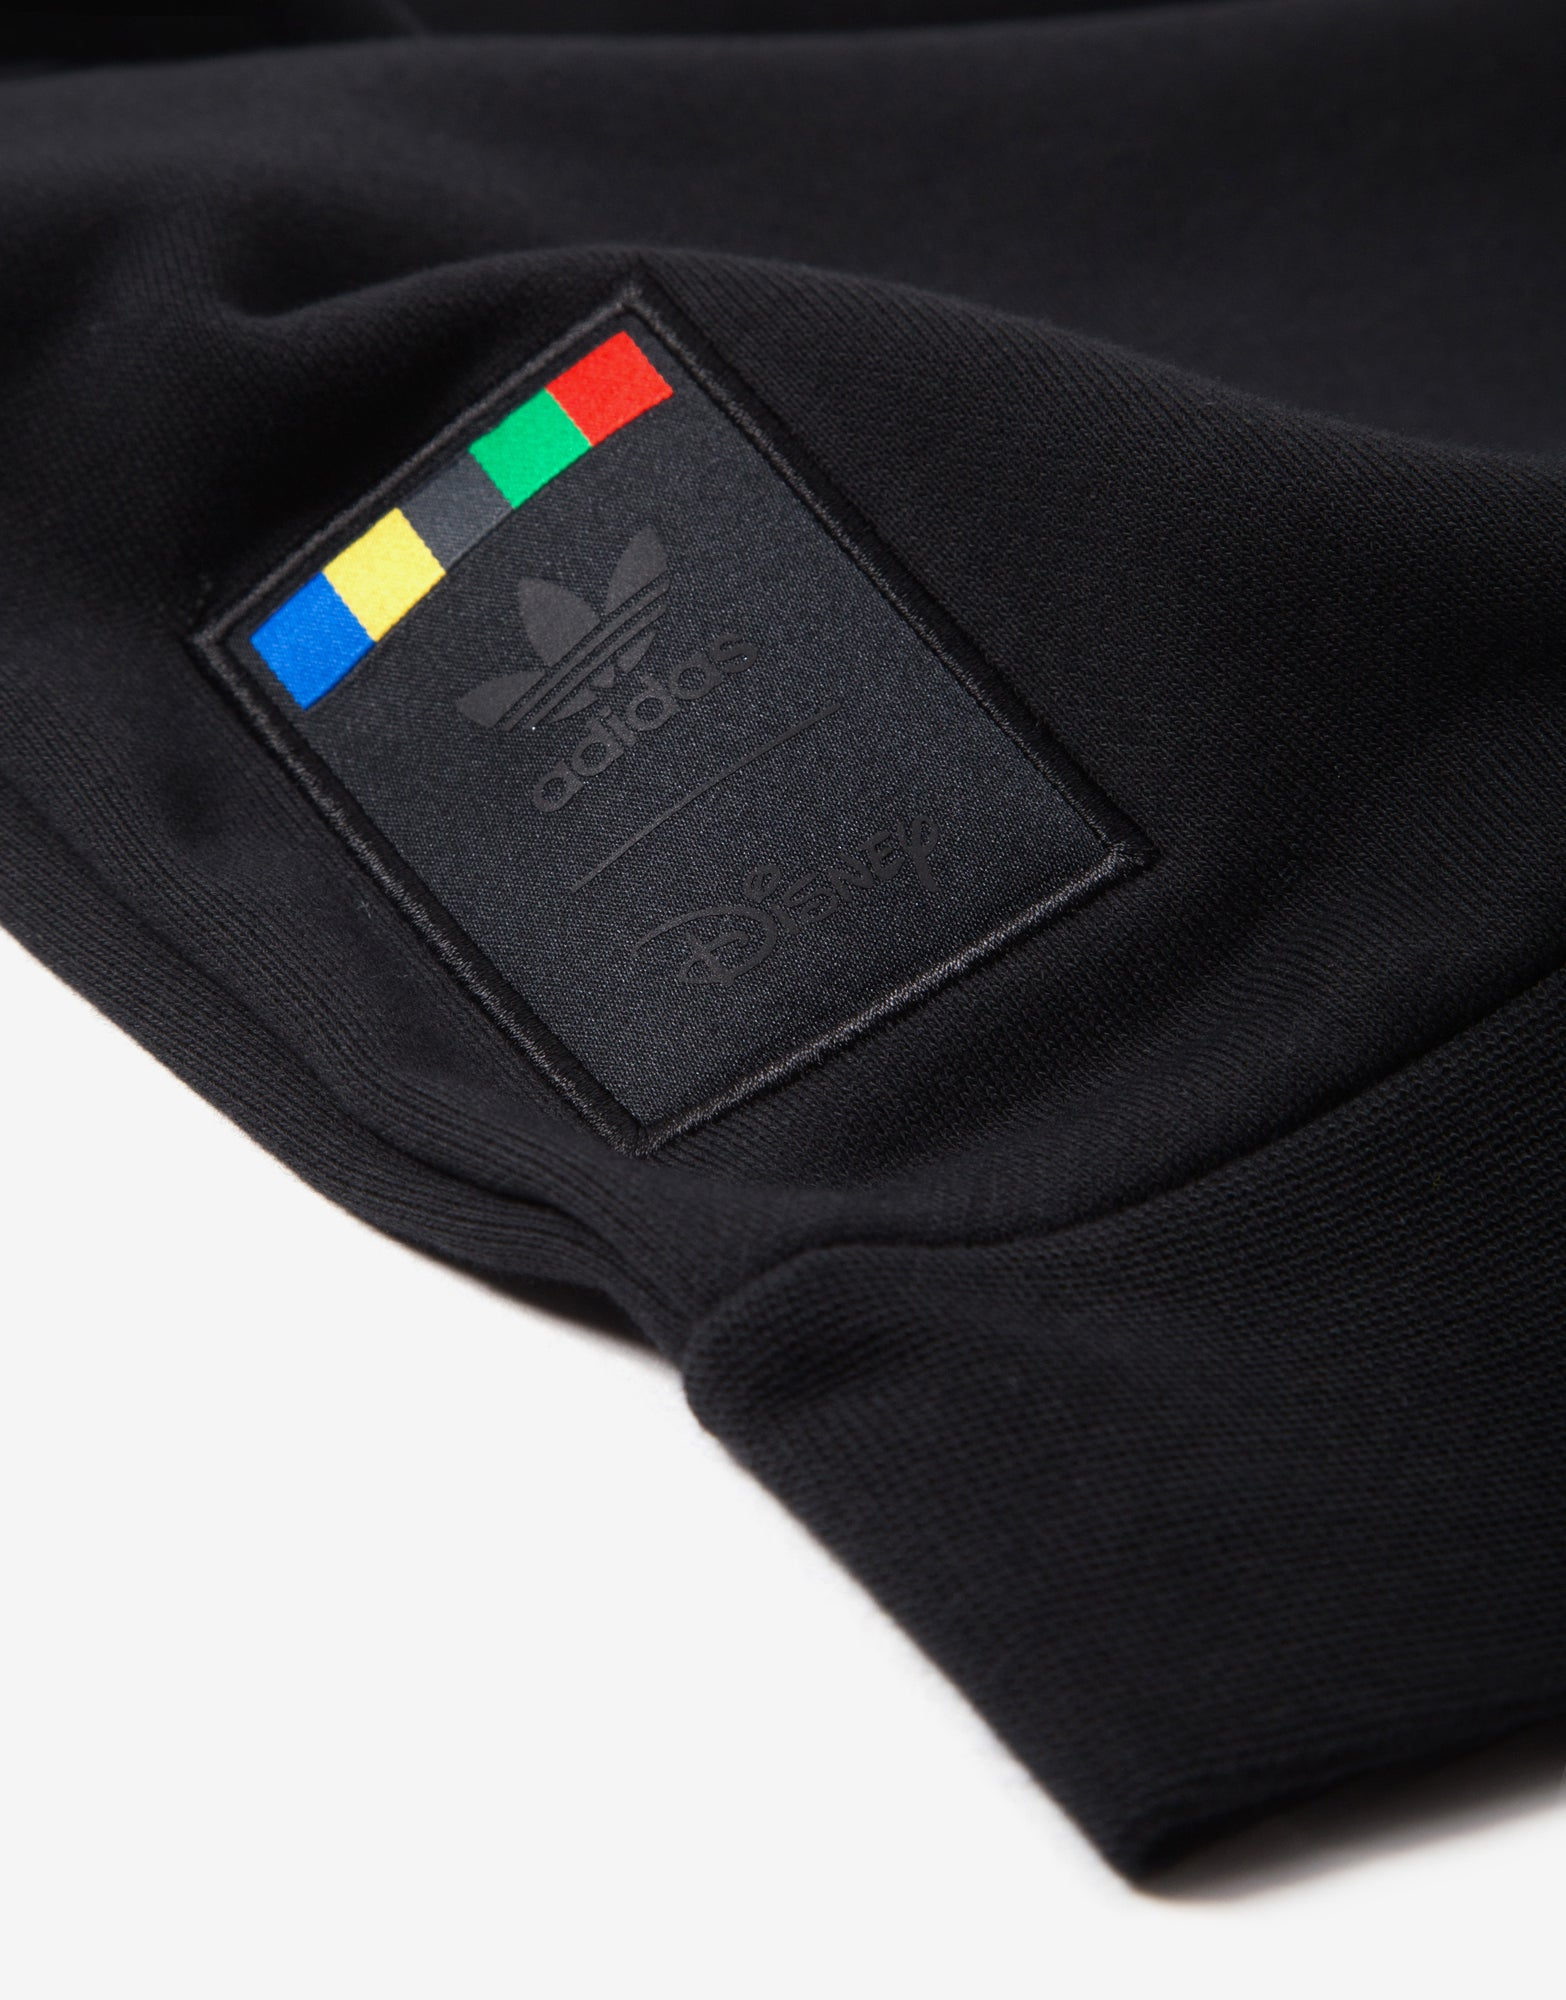 adidas Originals Goofy Crewneck - Black